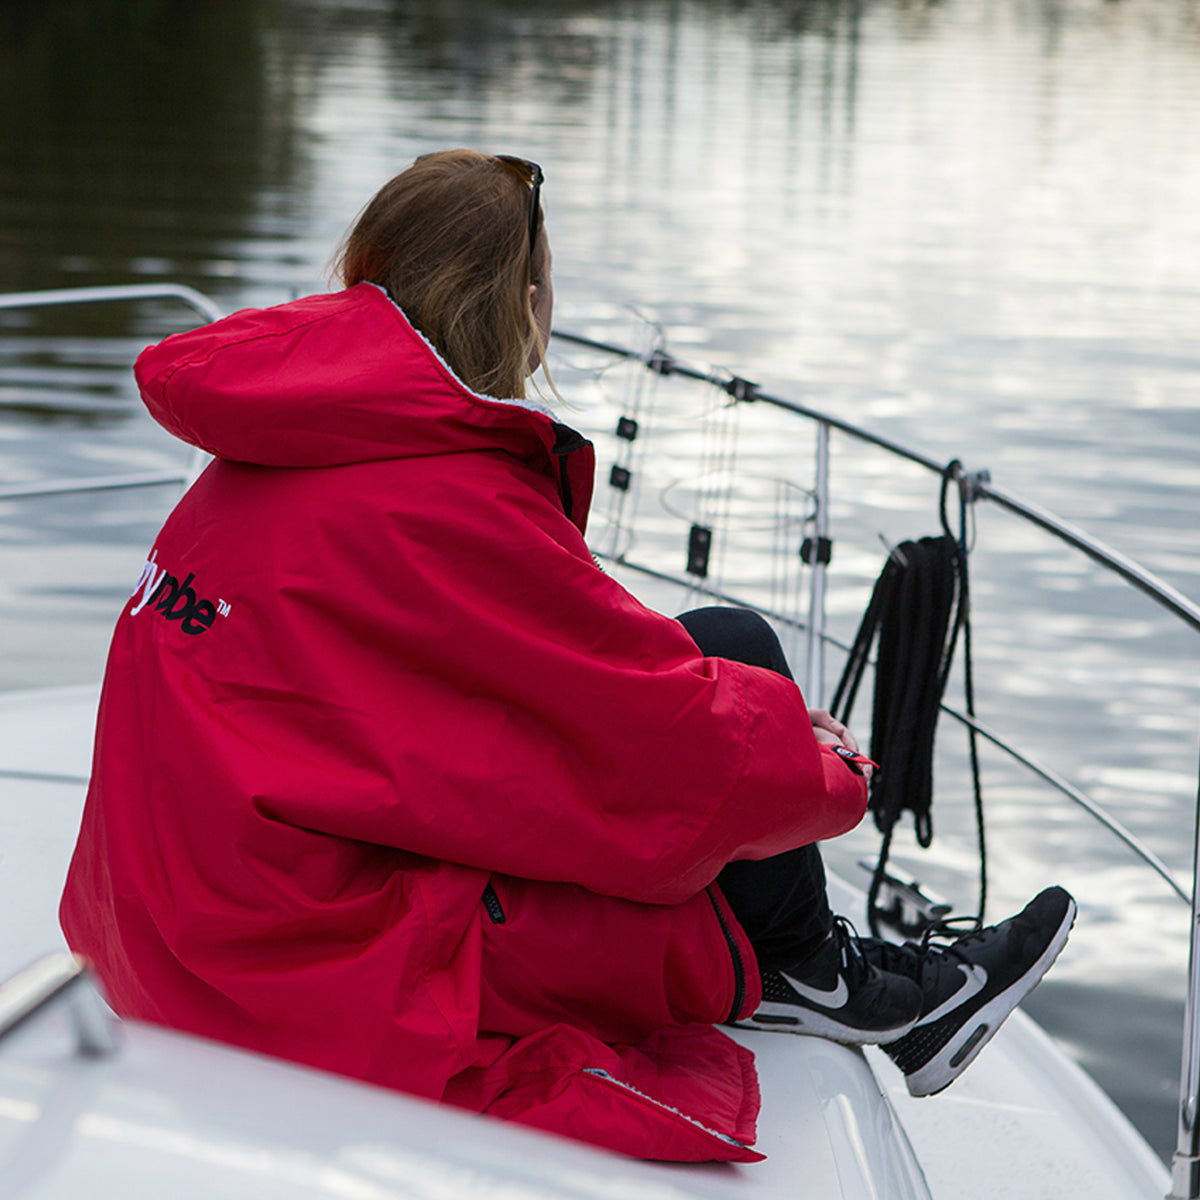 1| dryrobe Advance Long Sleeve Red Grey Female on Boat Lifestyle Image